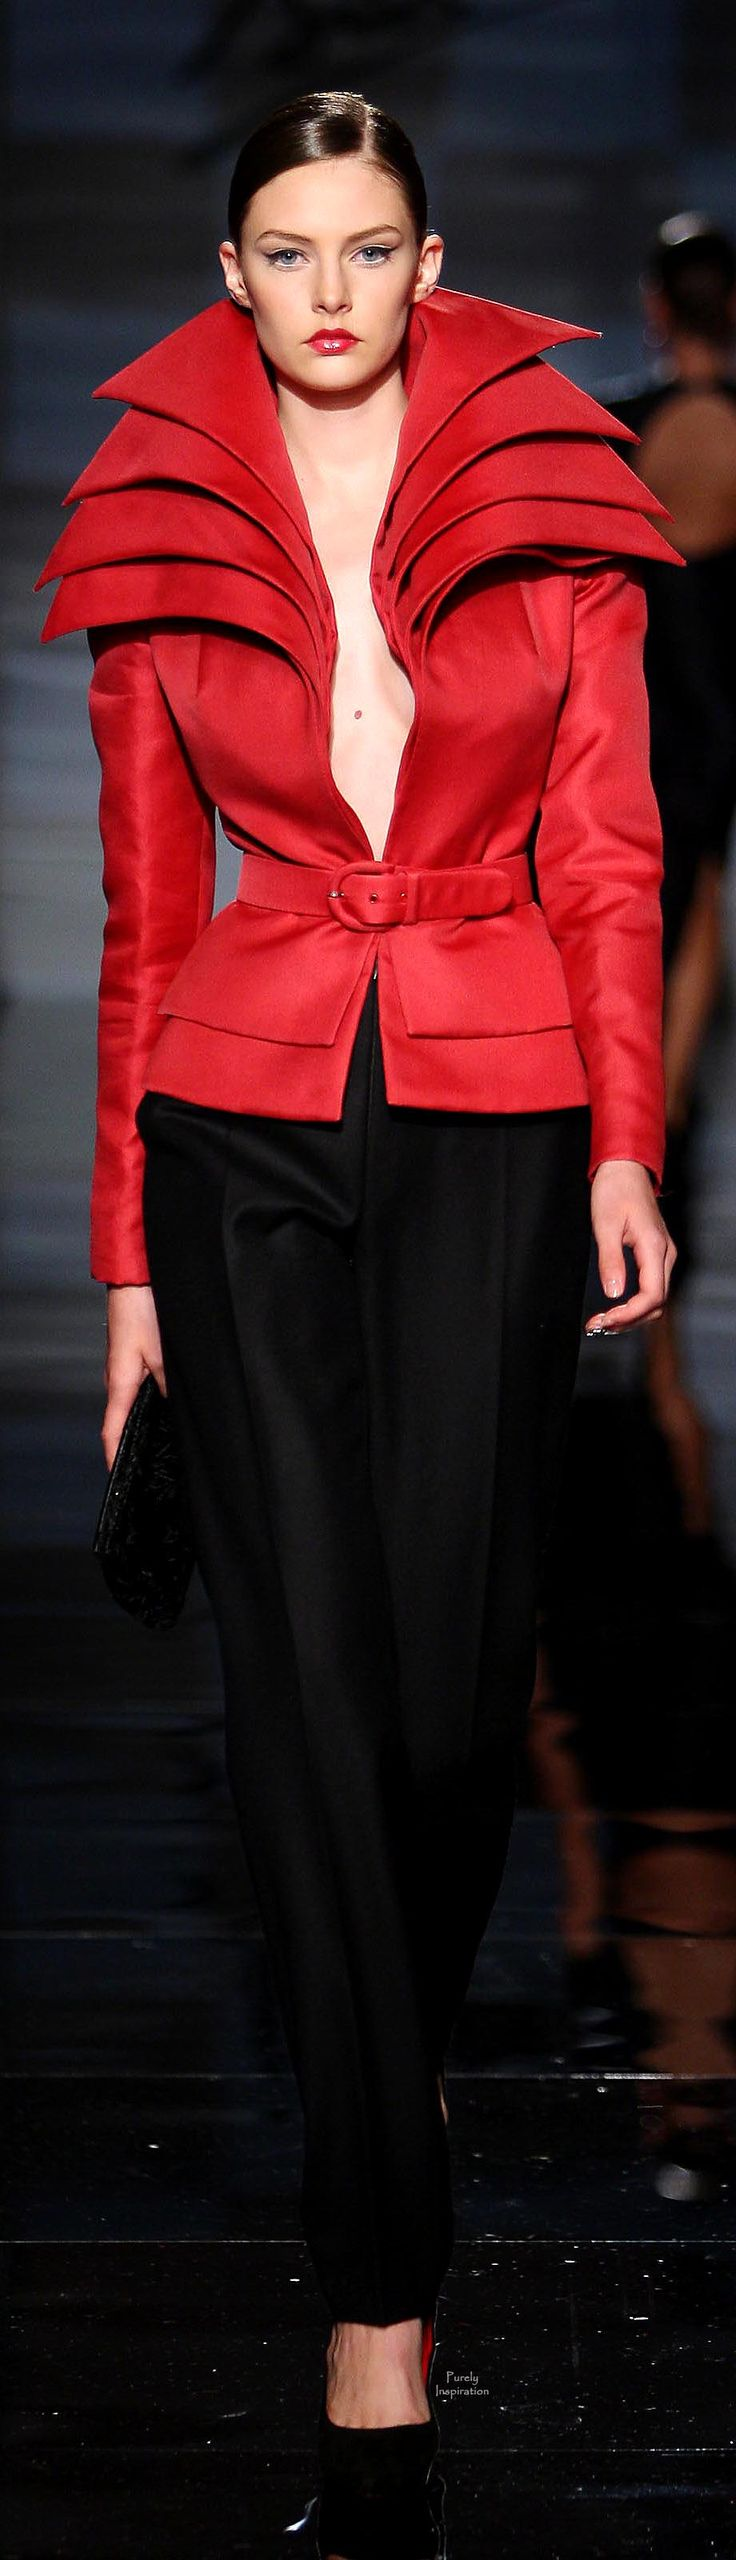 Like the style of the red jacket open and belted over the elegant black shimmer pant. Clothing, Shoes & Jewelry - Women - women's belts - http://amzn.to/2kwF6LI